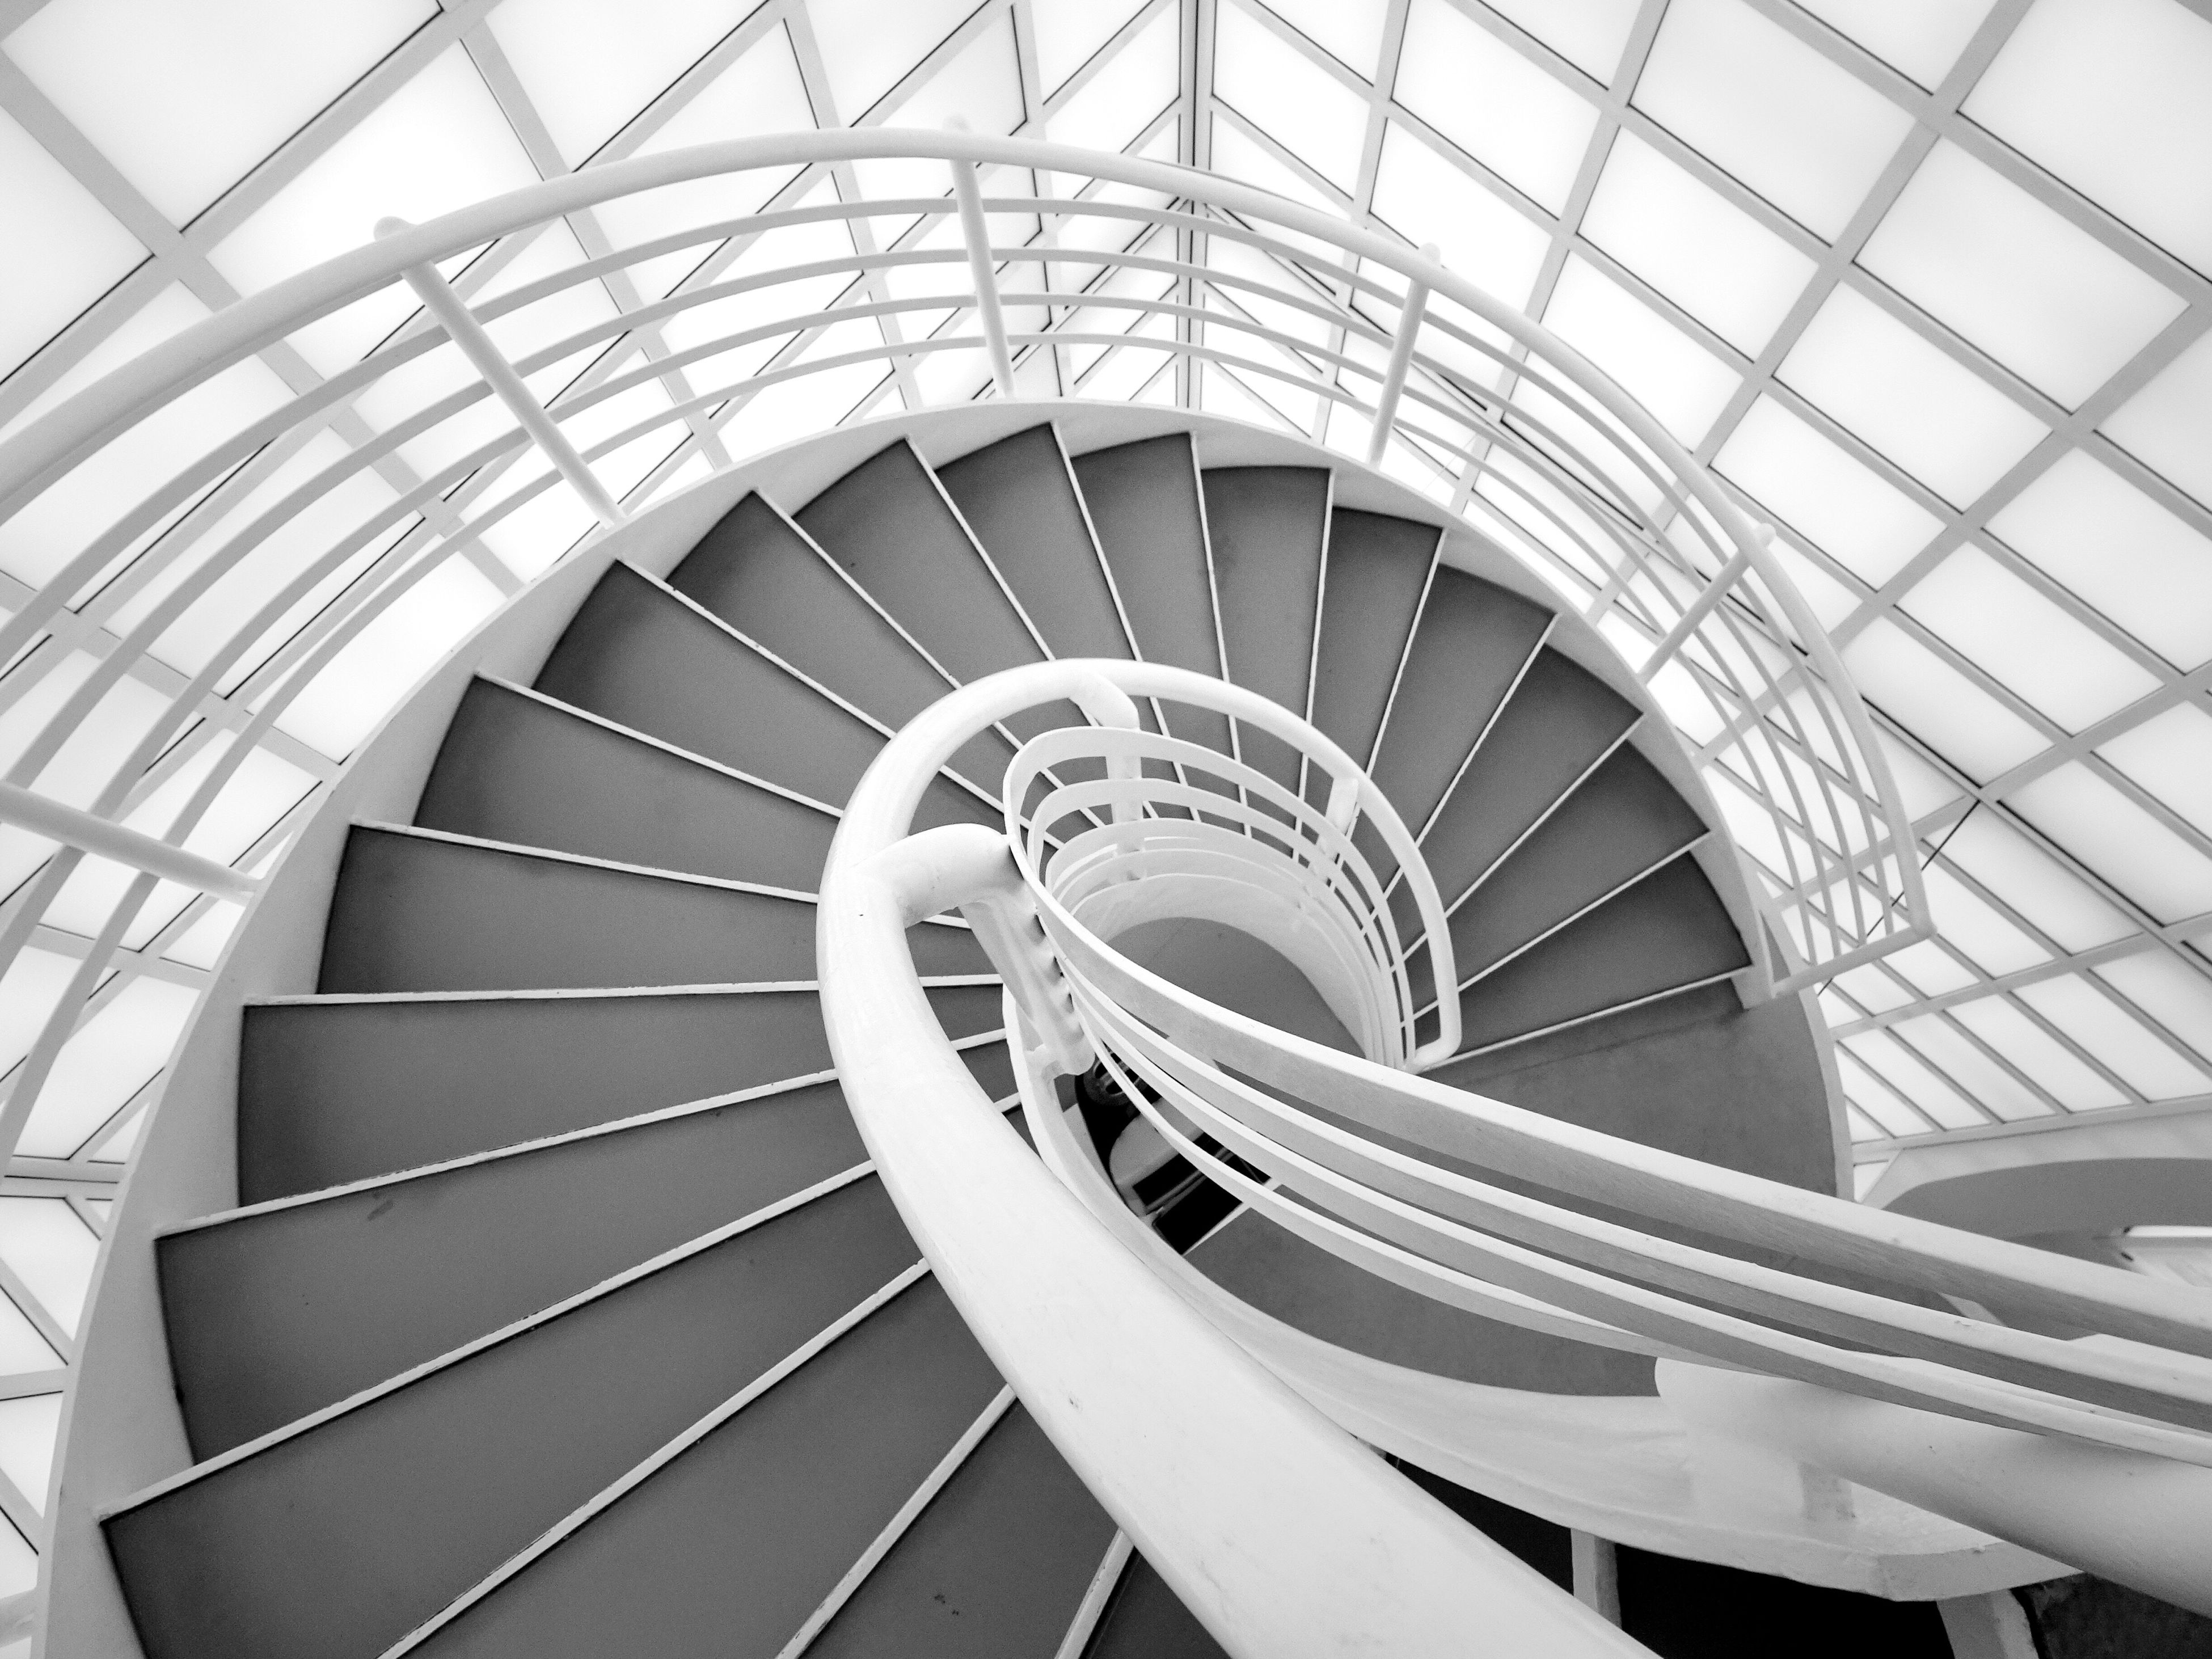 spiral, steps and staircases, staircase, steps, railing, built structure, architecture, spiral stairs, stairs, day, low angle view, indoors, no people